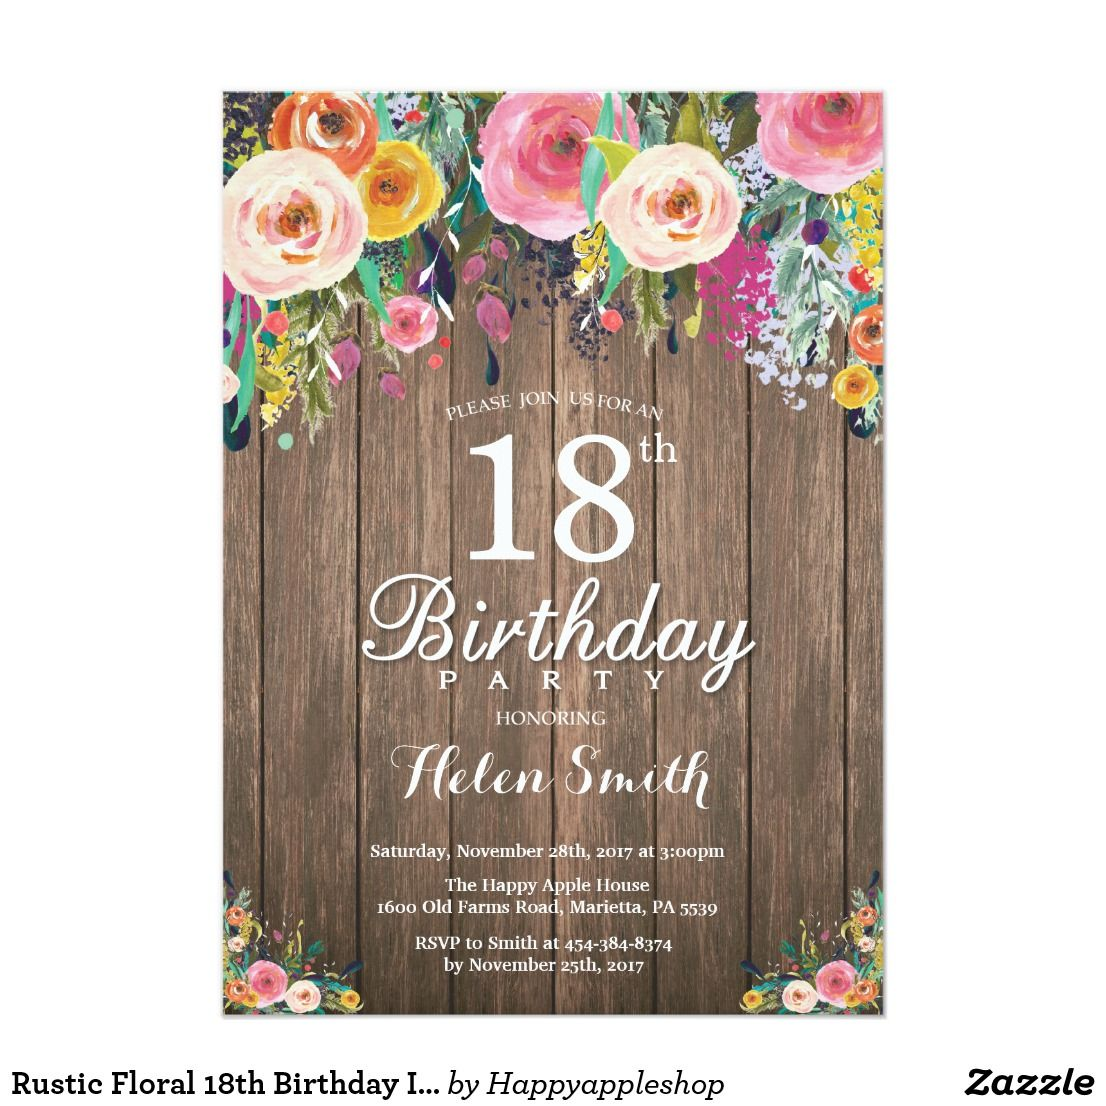 Rustic Floral 18th Birthday Invitation for Women Rustic Floral 18th Birthday Invitation for Women. Watercolor Floral Flower, Rustic Wood Background.